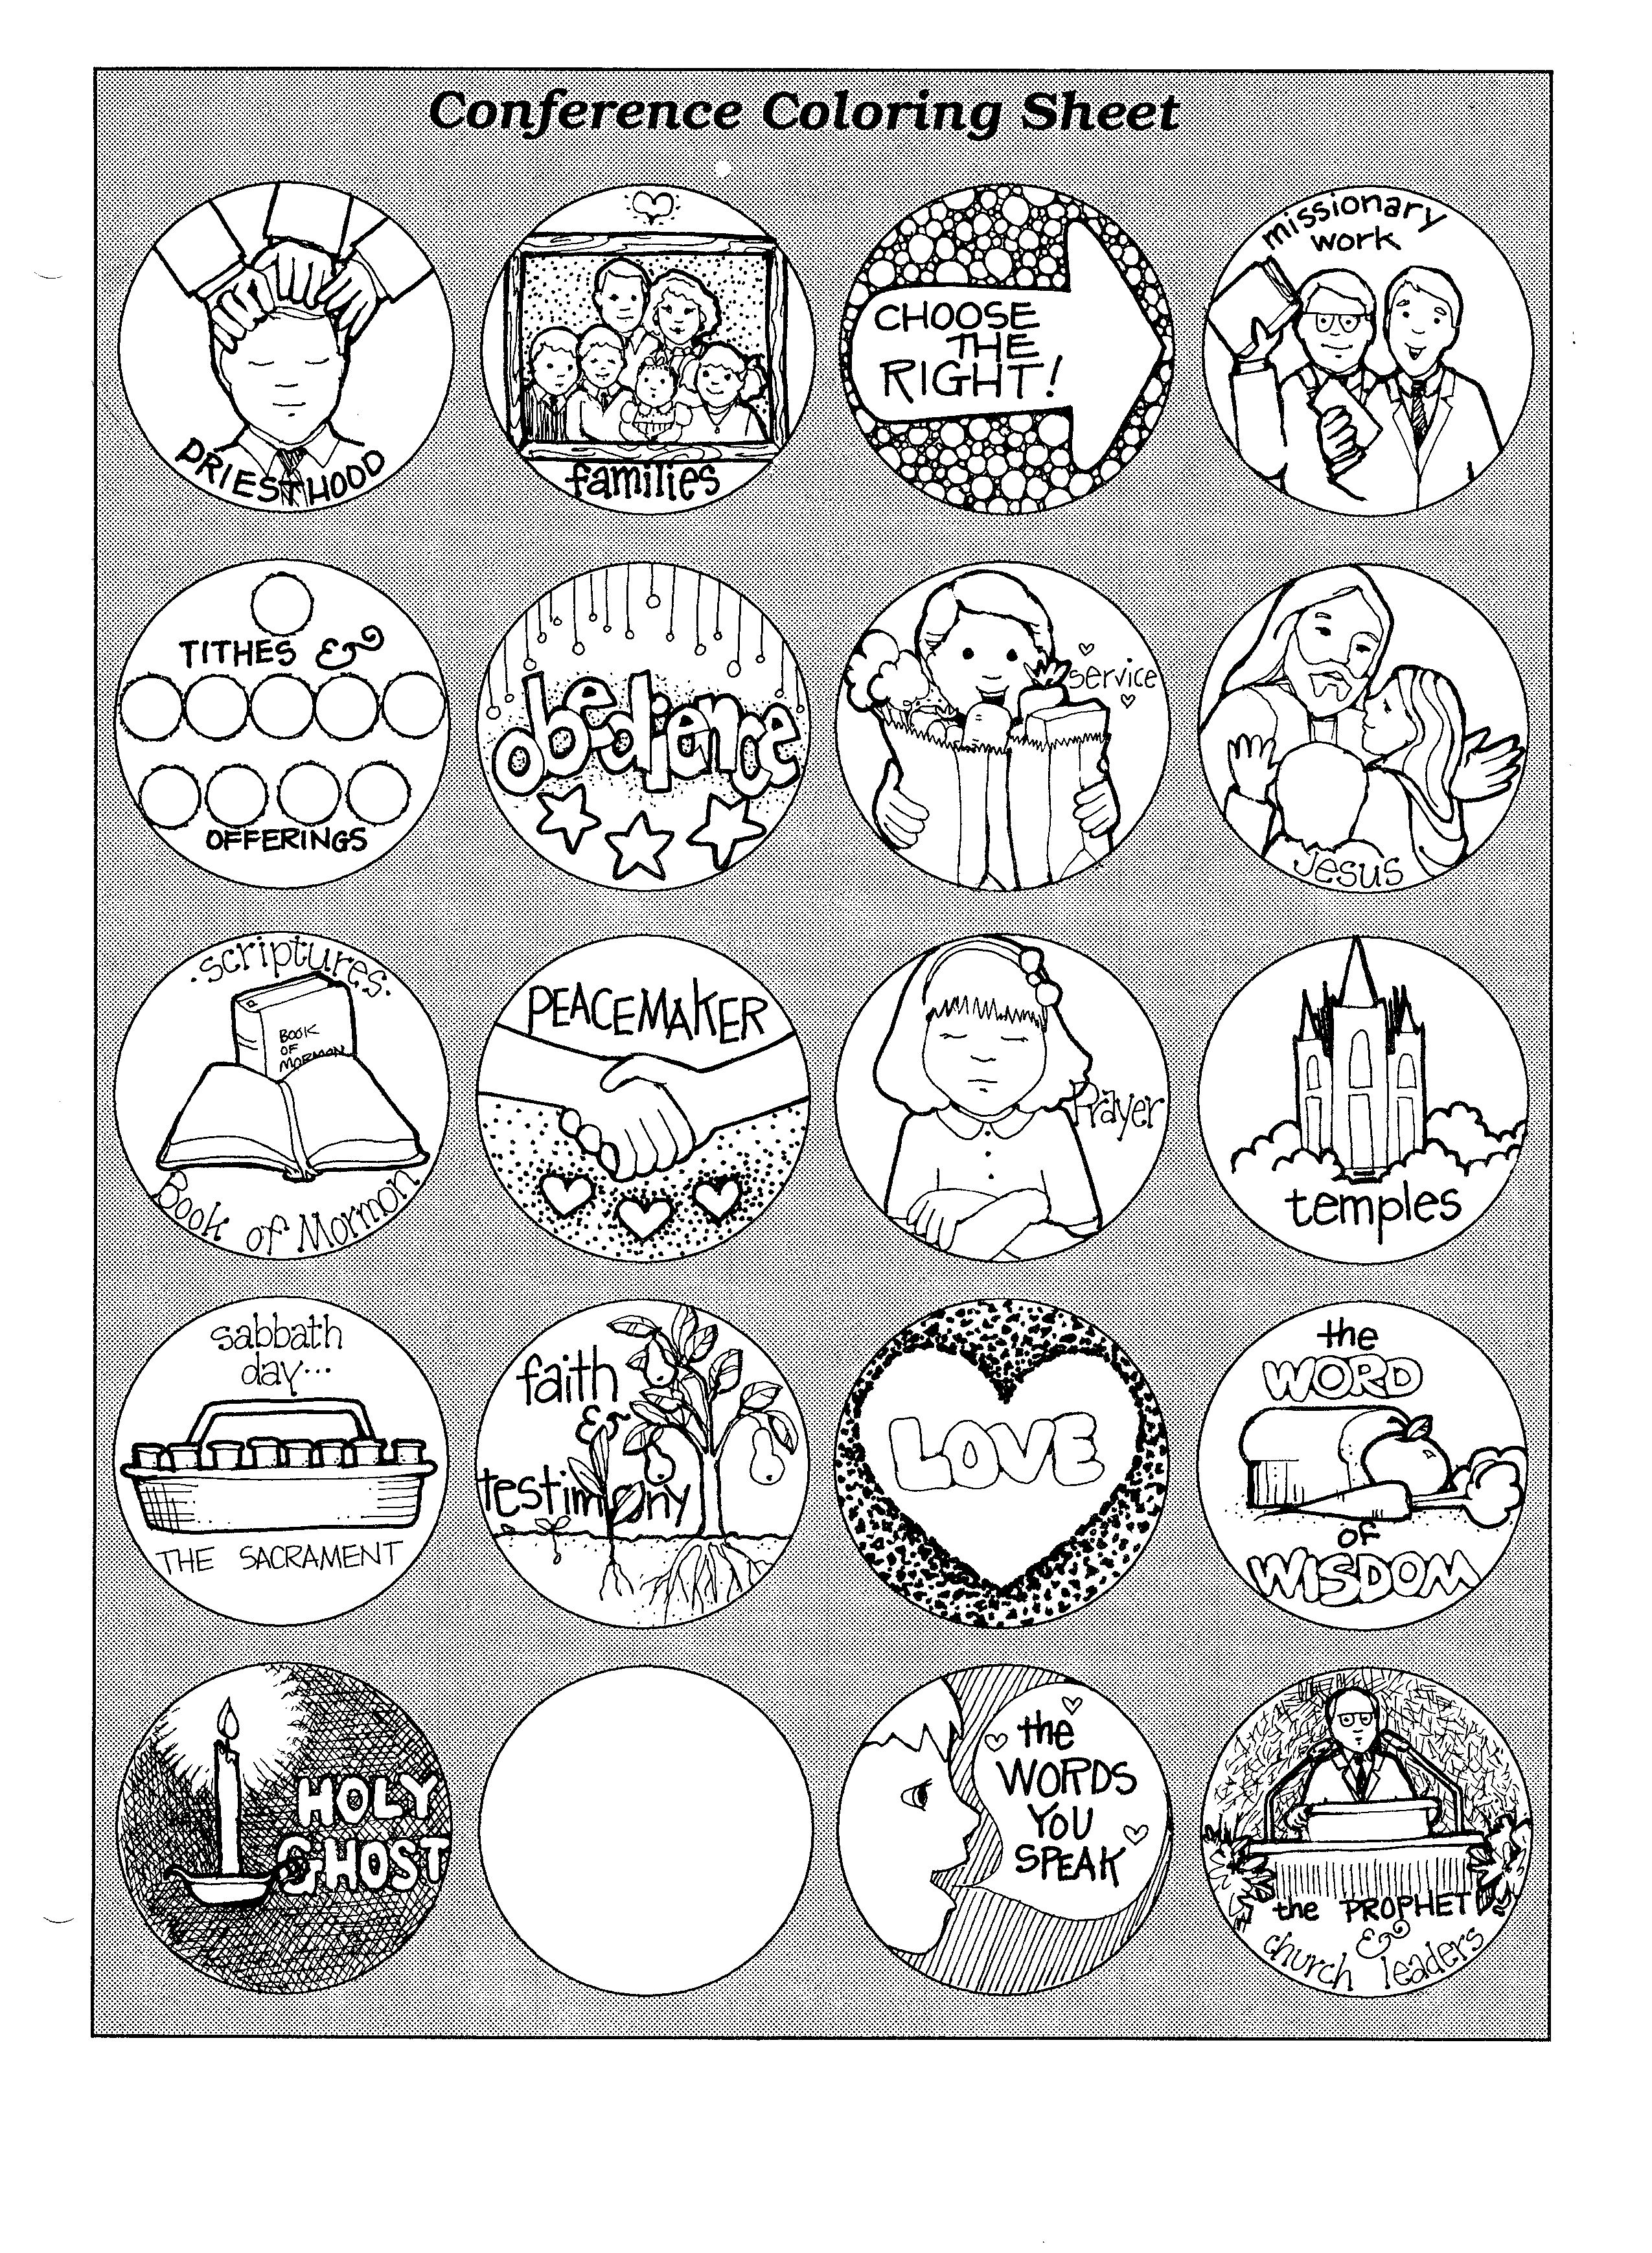 Mormon Share General Conference Coloring Page